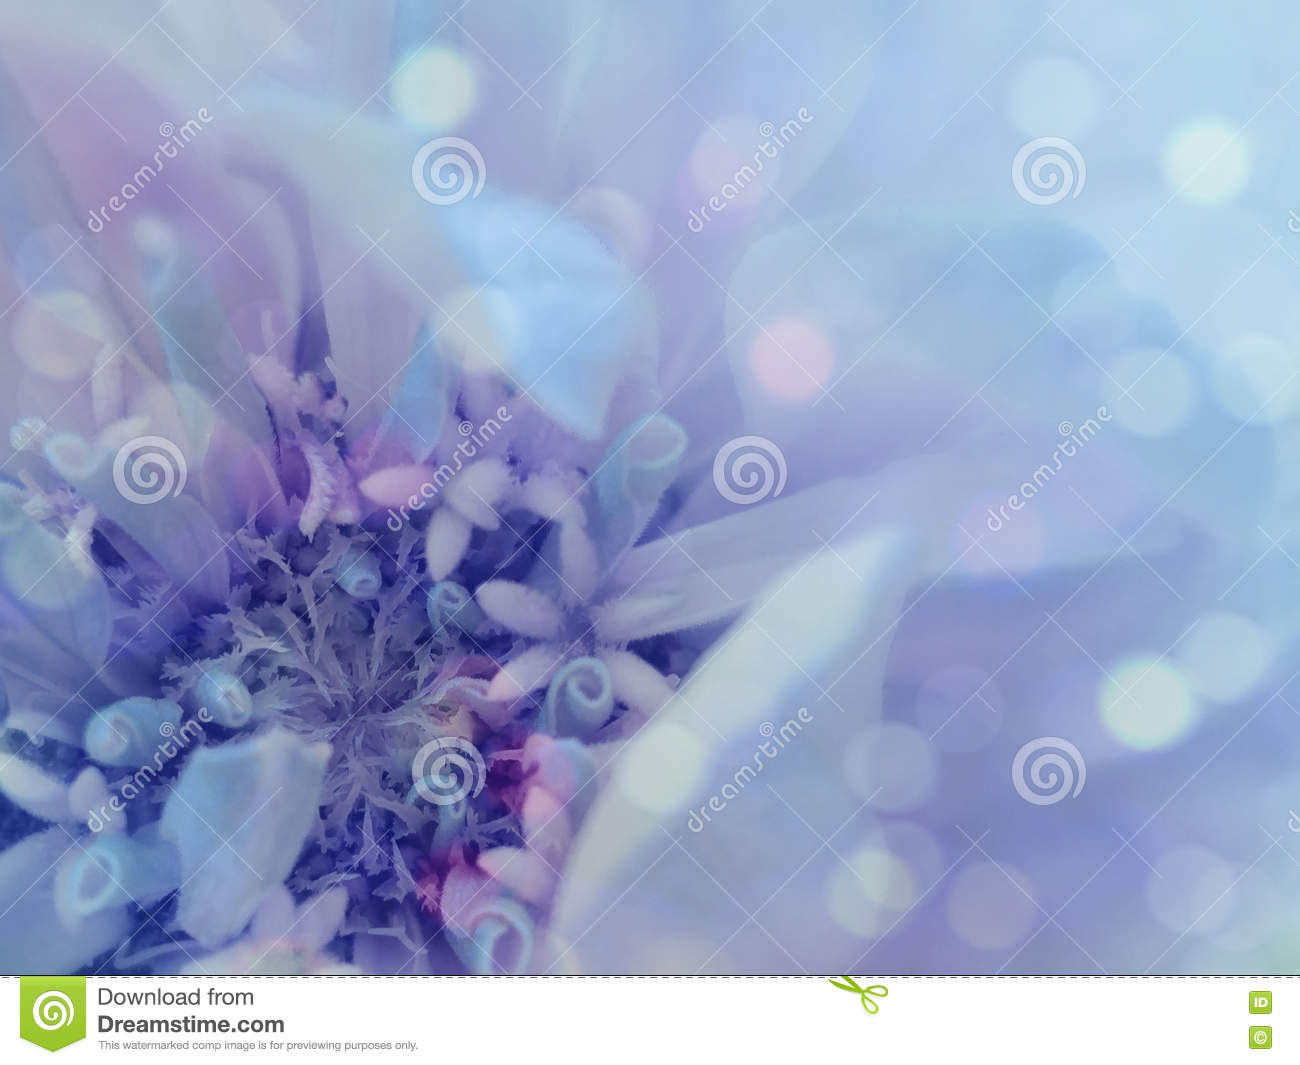 Blue Purple Flower On The Transparent Blue Blurred Background